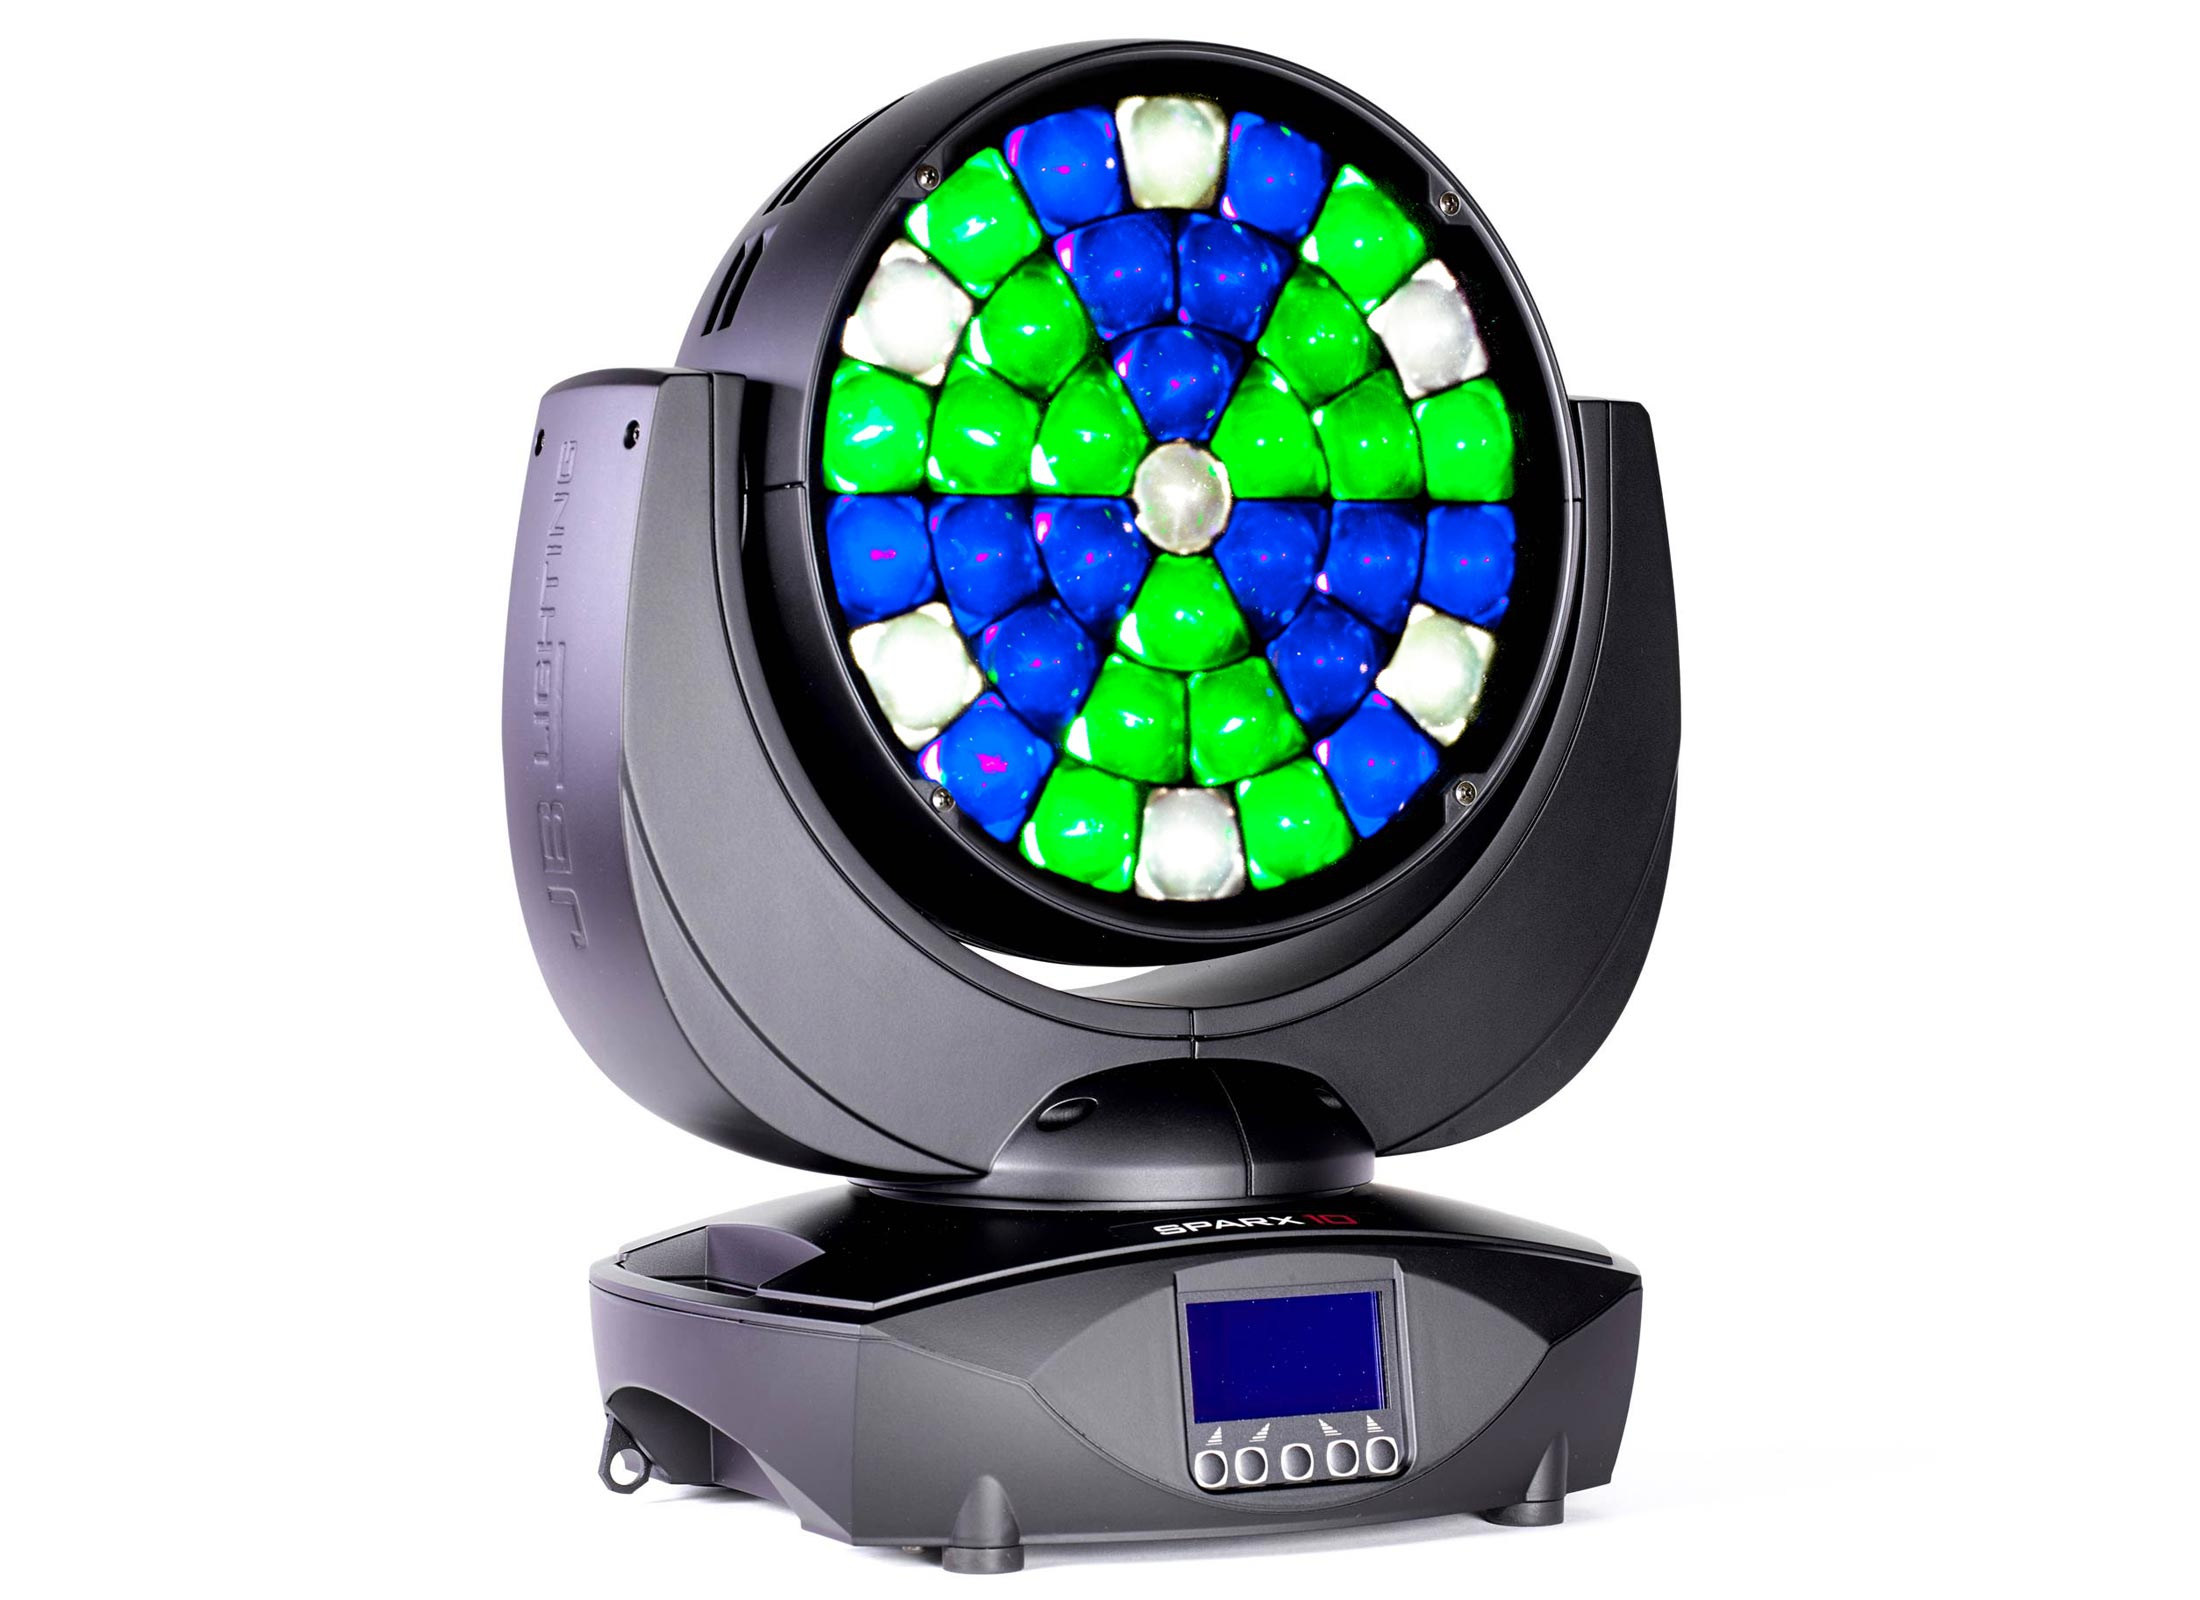 jb lighting sparx 10 led moving head wash g nstig online. Black Bedroom Furniture Sets. Home Design Ideas